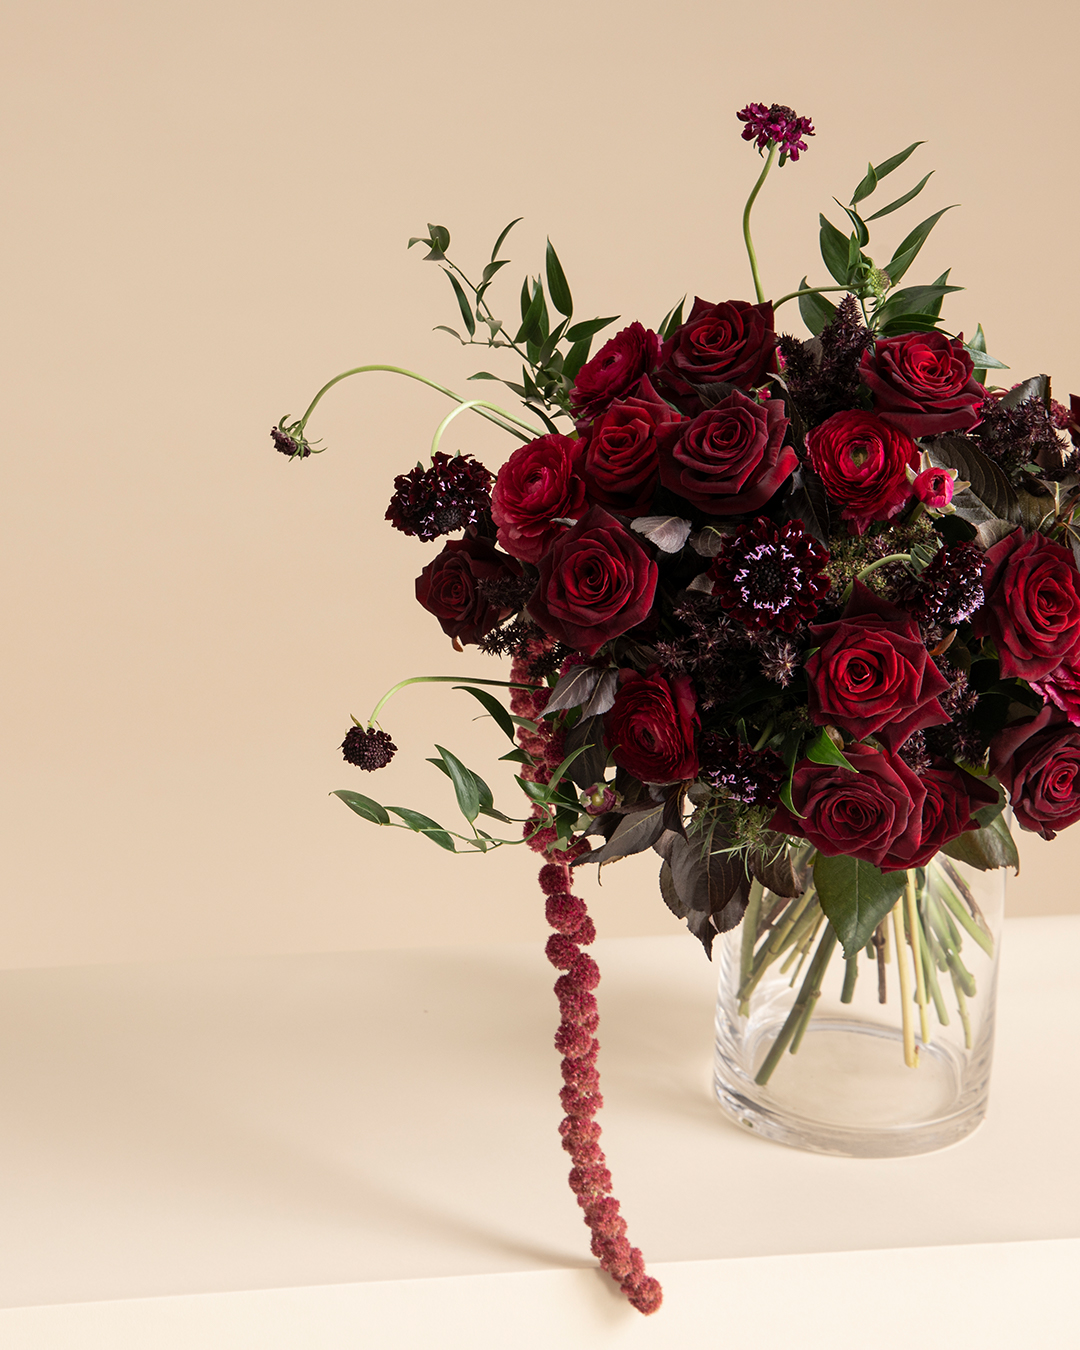 Mobile banner image of Rose Noir flower bouquet of Carnation and Ranunculus for the online flower collection